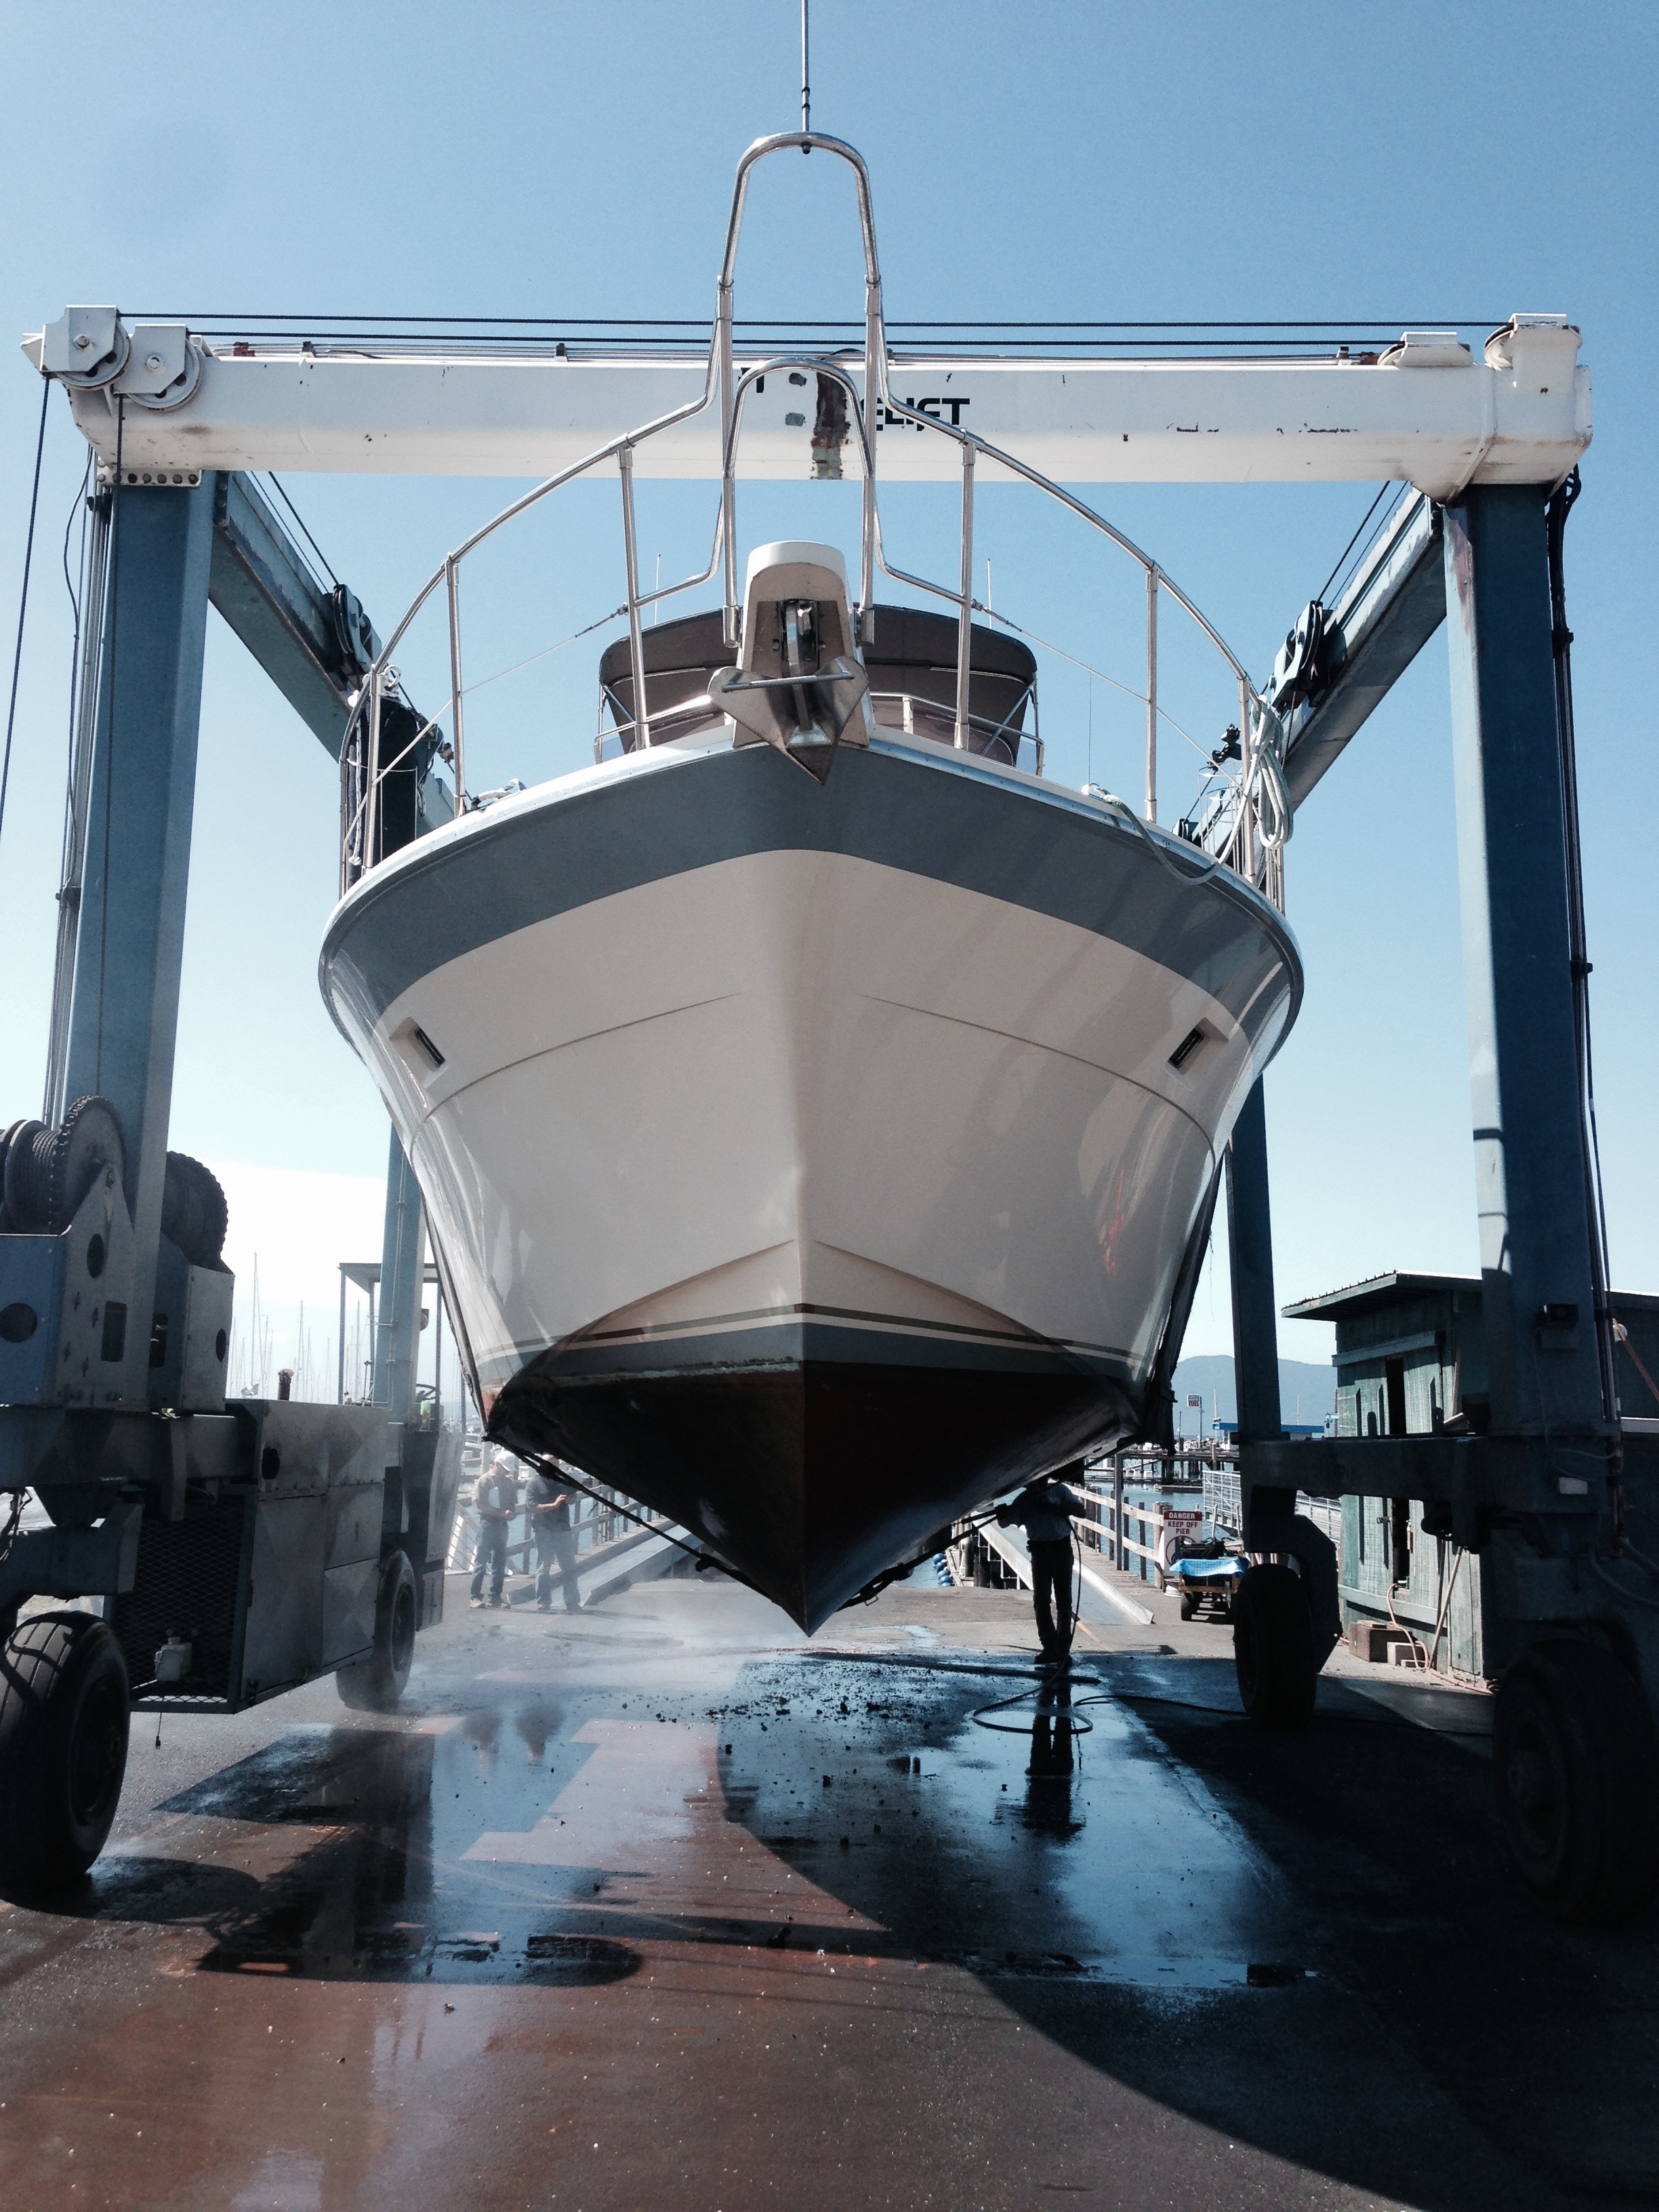 Inspecting the hull and running gear is easy while she's up in the slings…